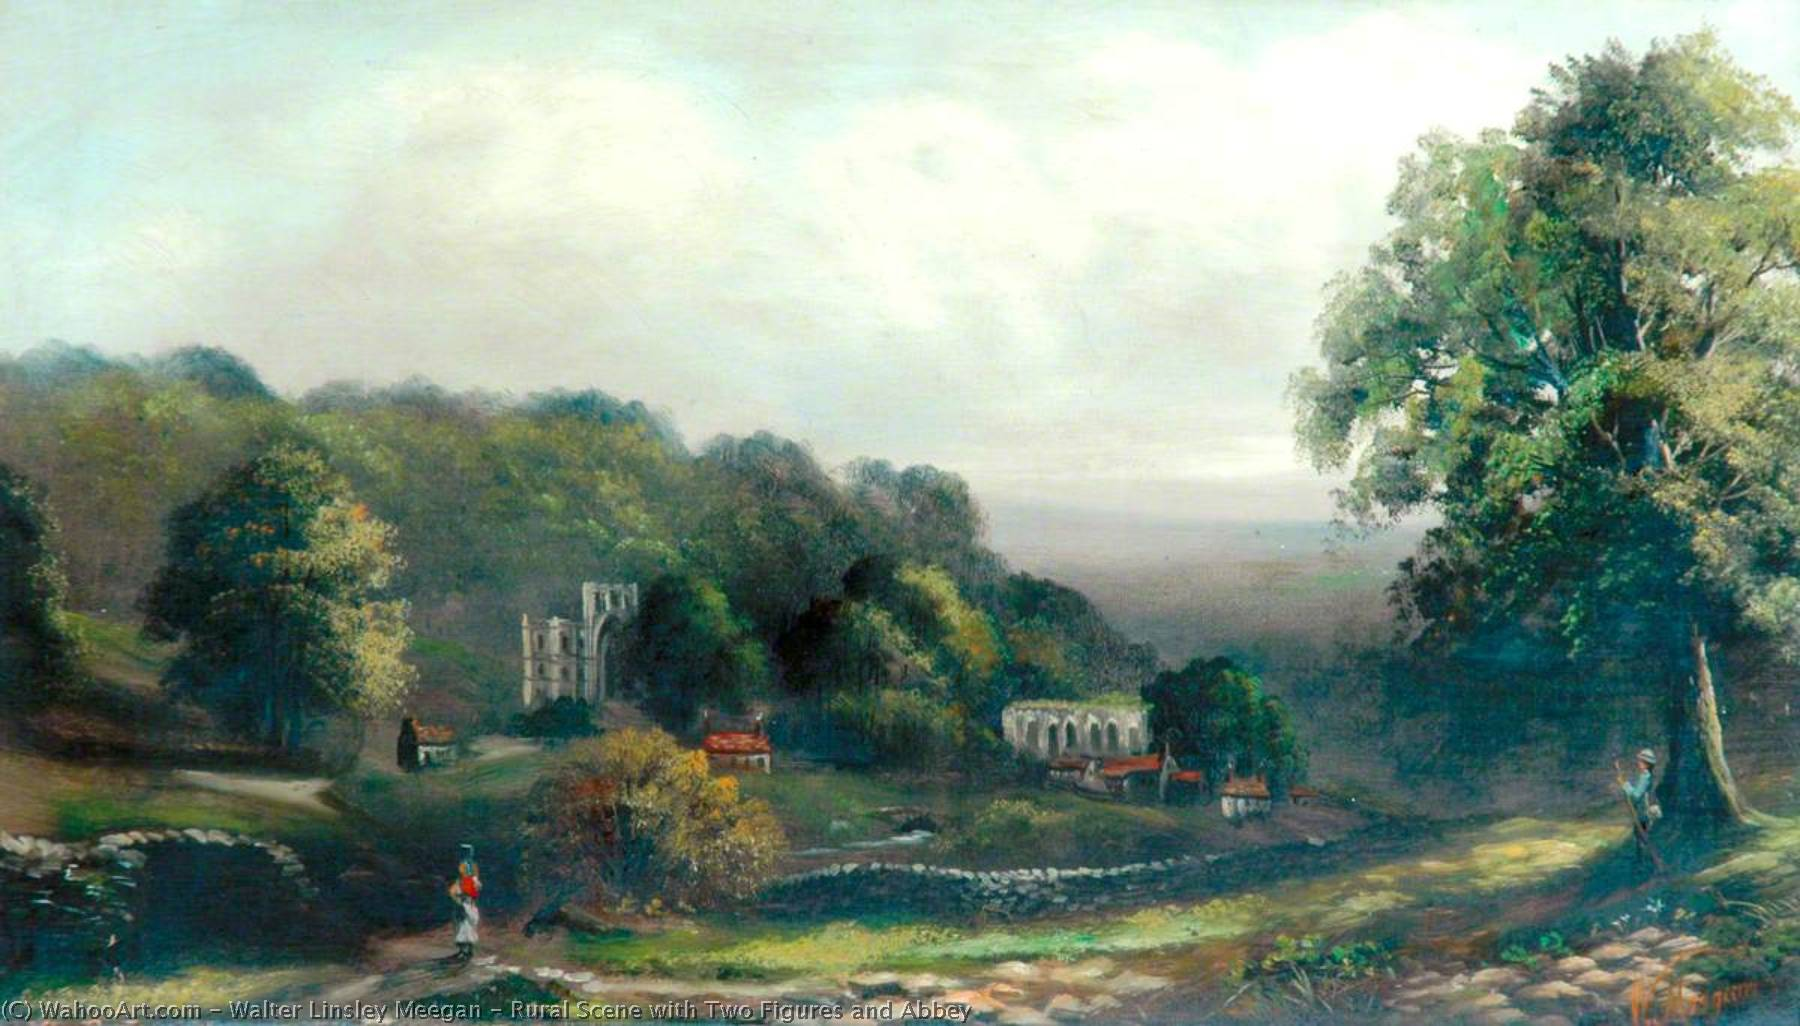 Rural Scene with Two Figures and Abbey by Walter Linsley Meegan | Art Reproduction | WahooArt.com